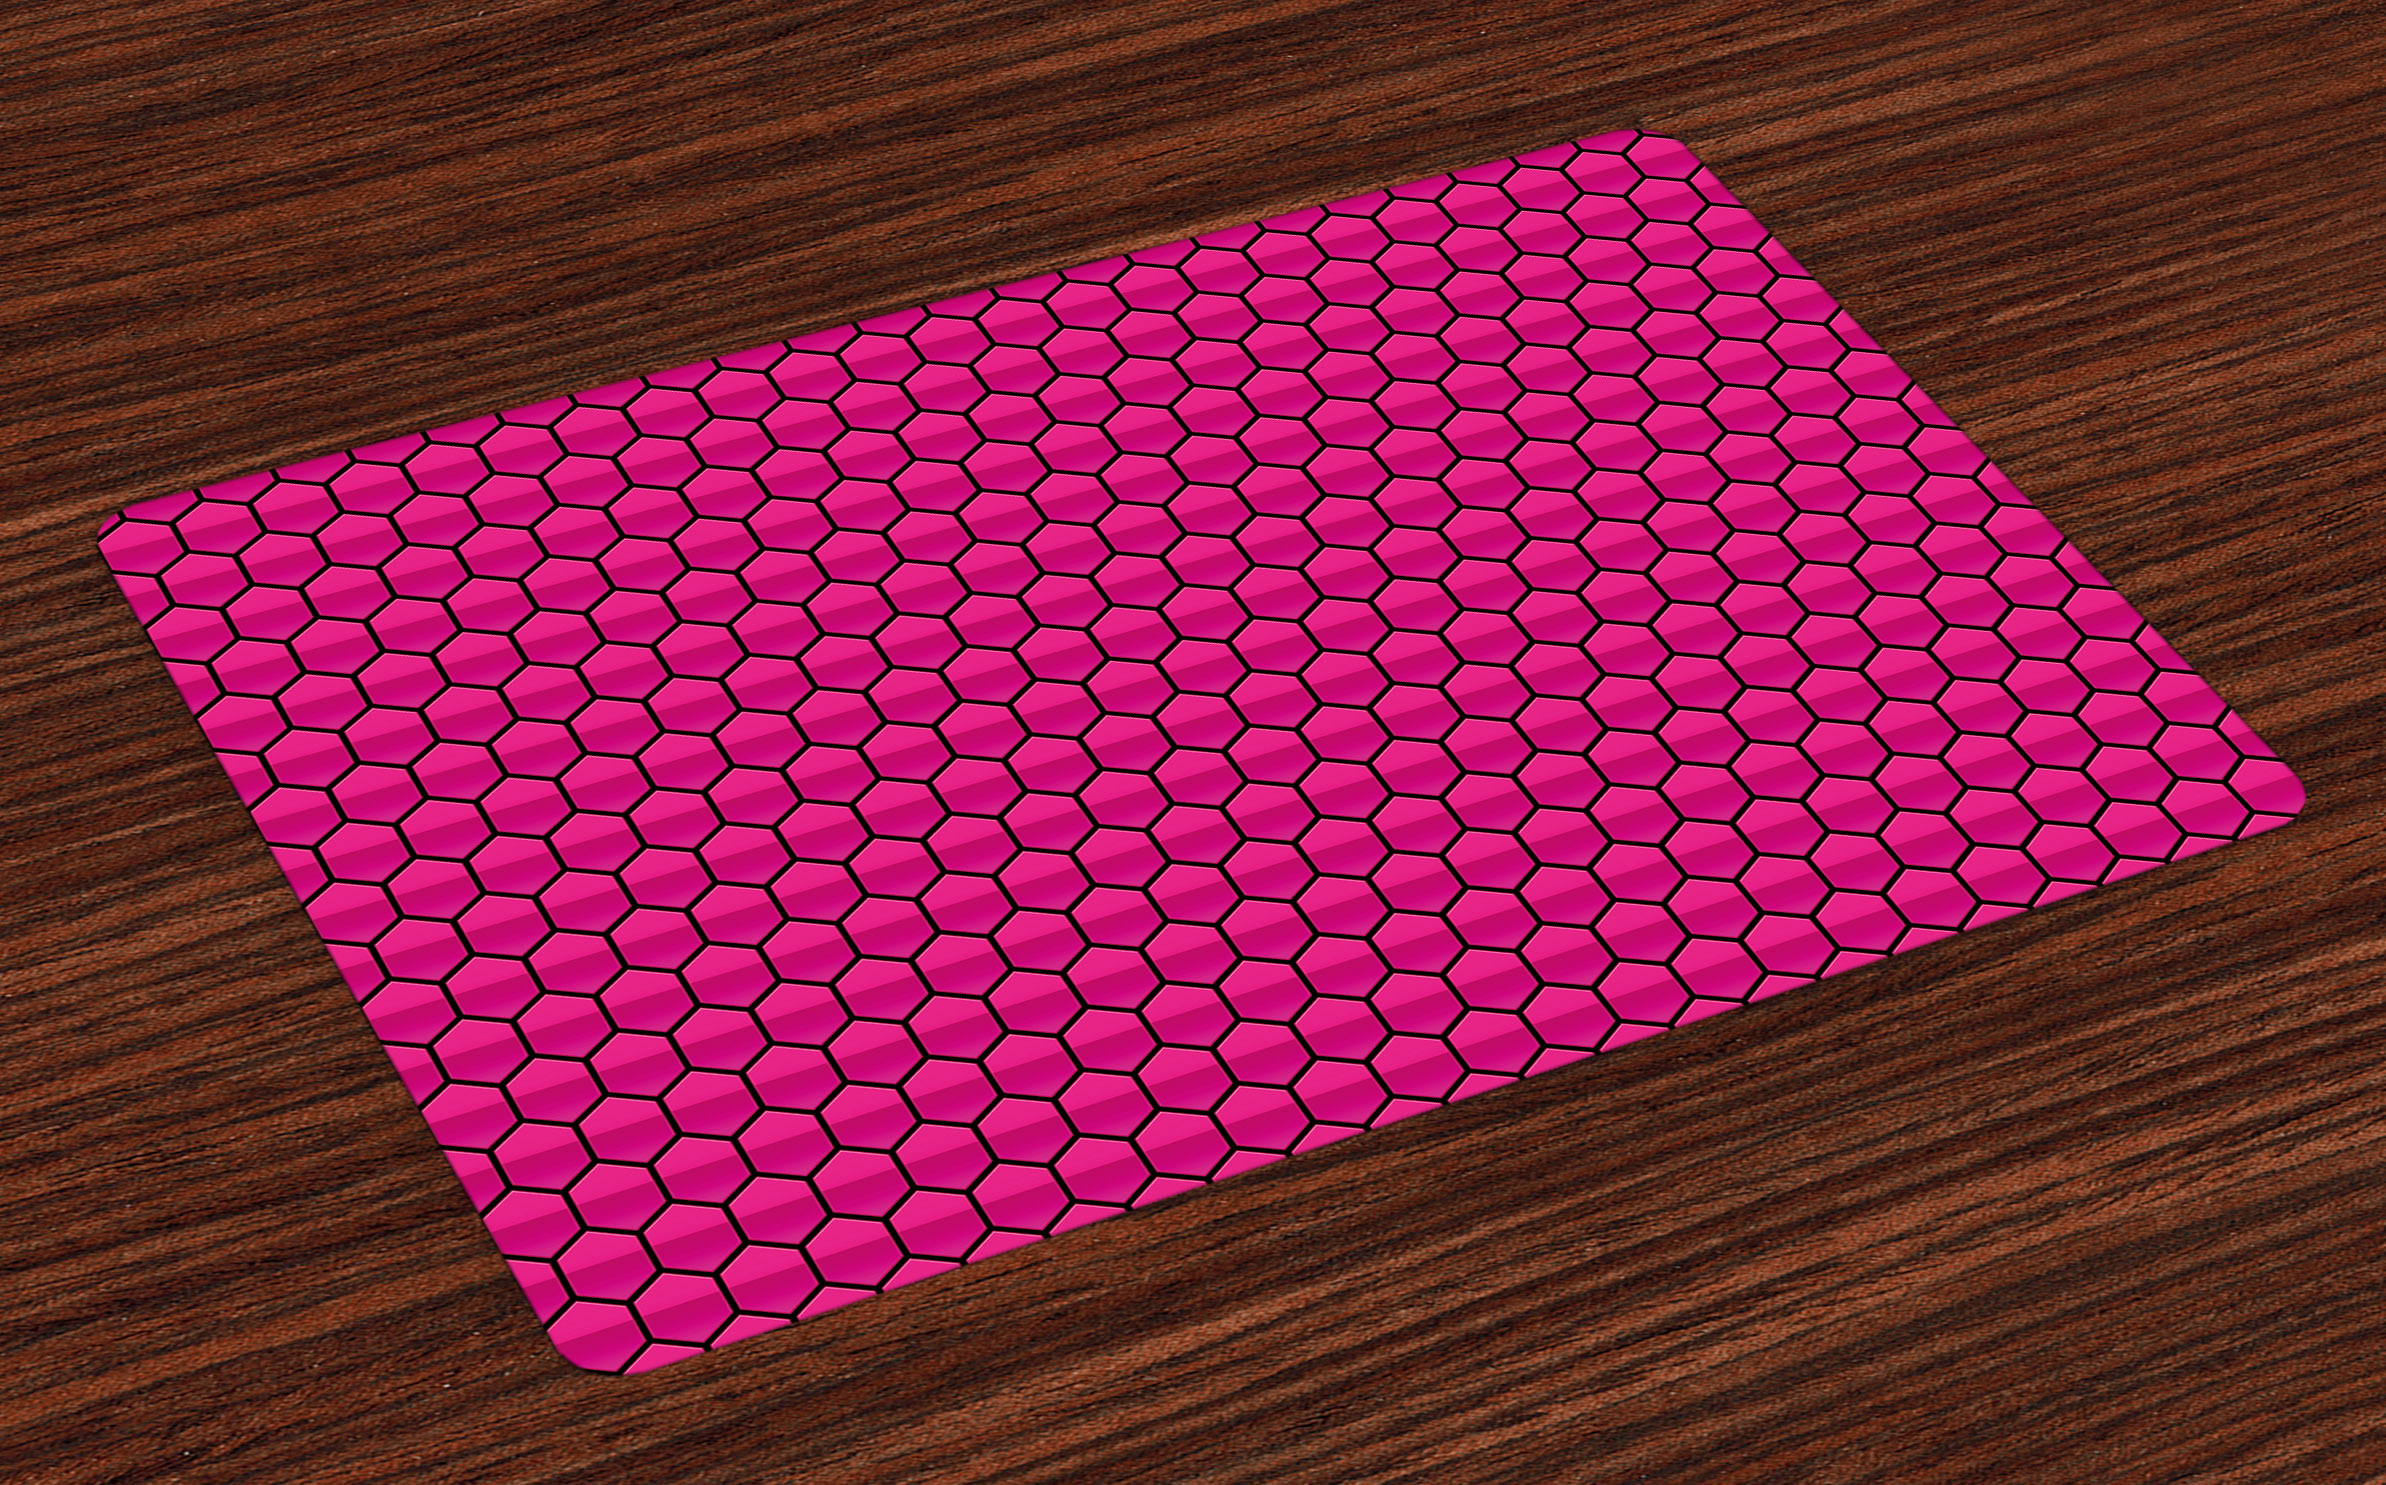 hot pink kitchen accessories zeal mat | Hot Pink Placemats Set of 4 Honeycomb Pattern Nature ...